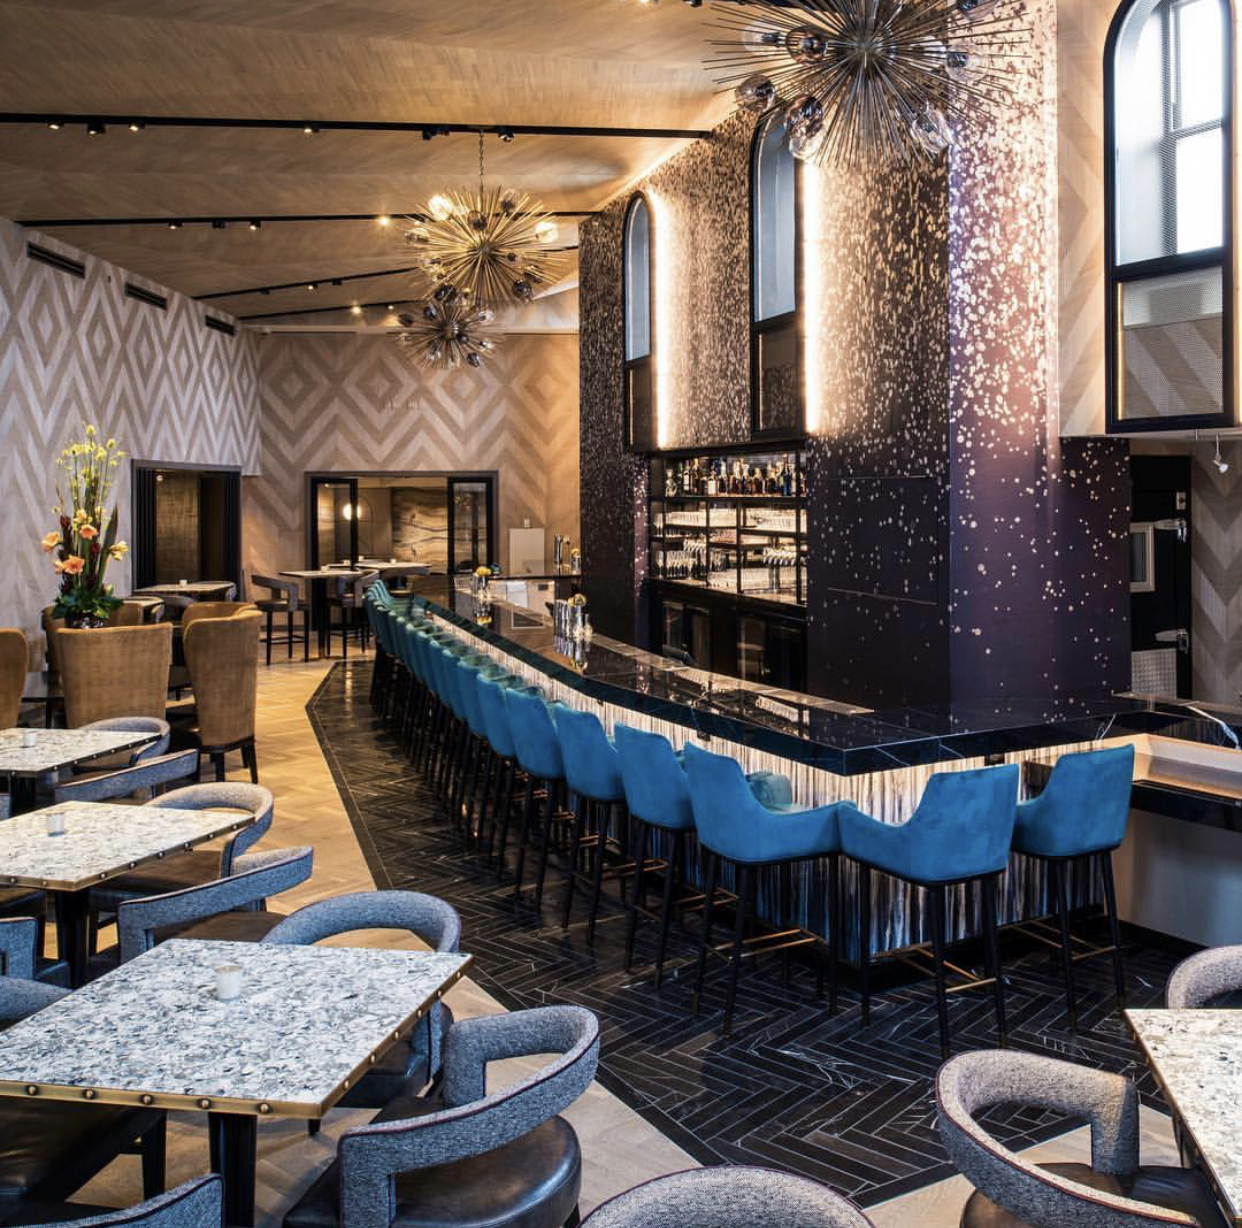 London House Chicago -